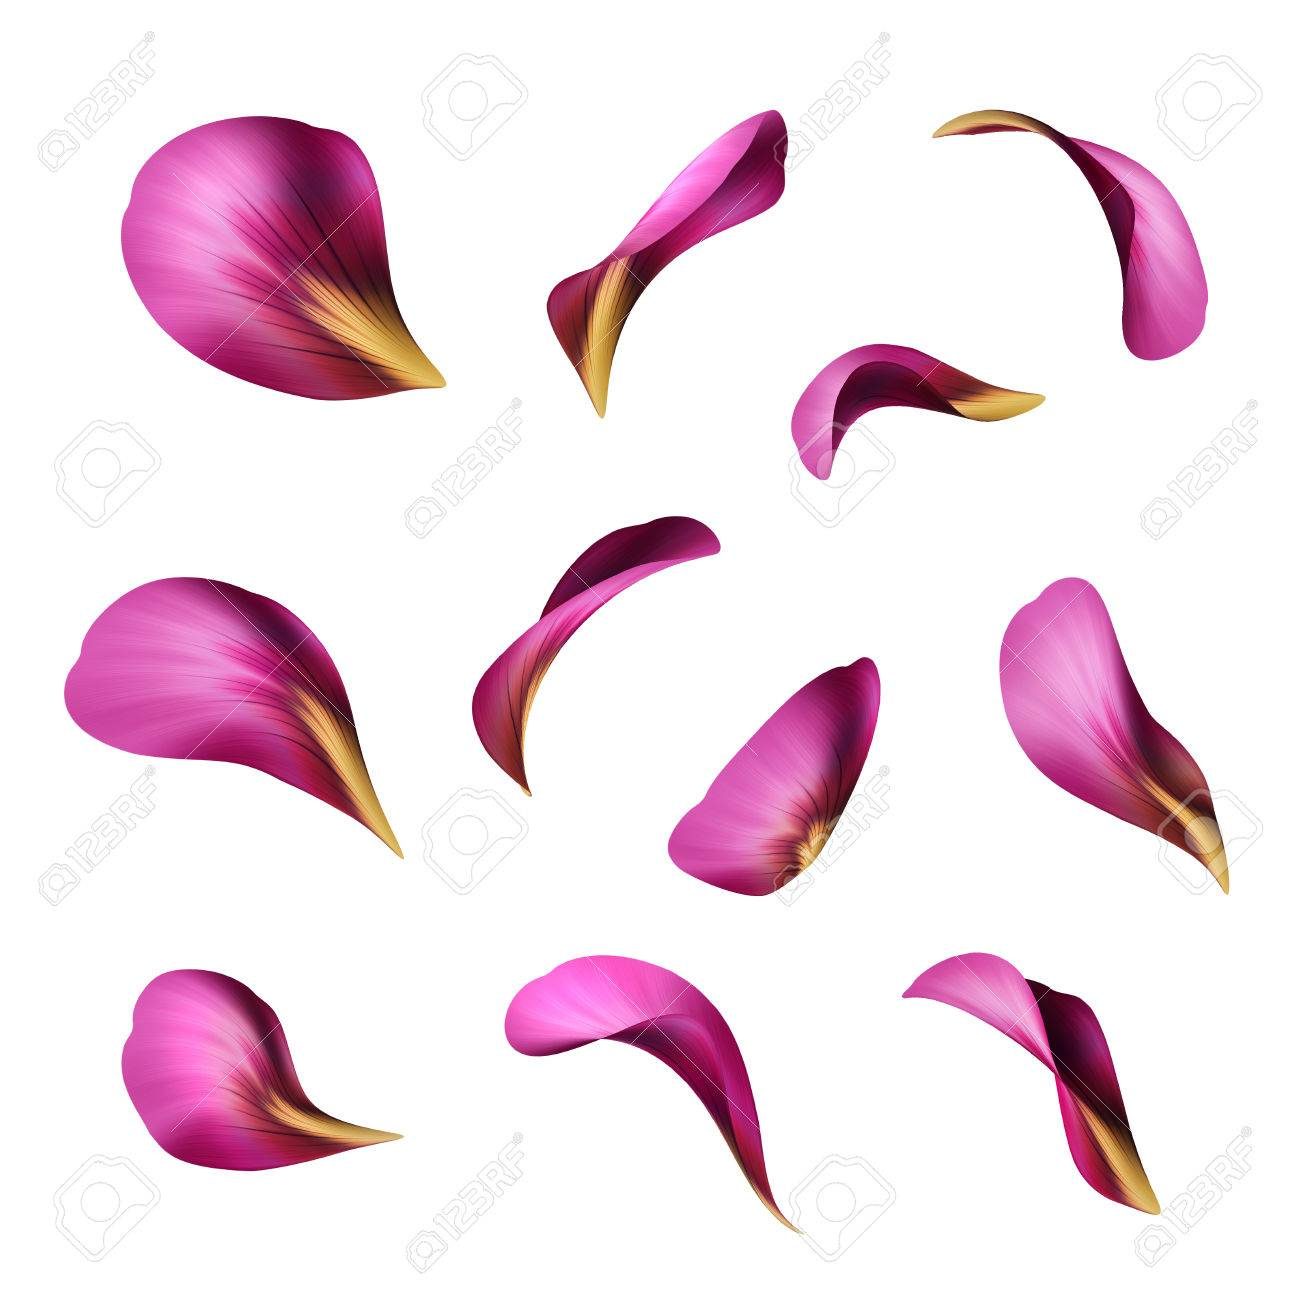 1299x1300 Purple Flower Petals, Botanical Illustration, Floral Clip Art